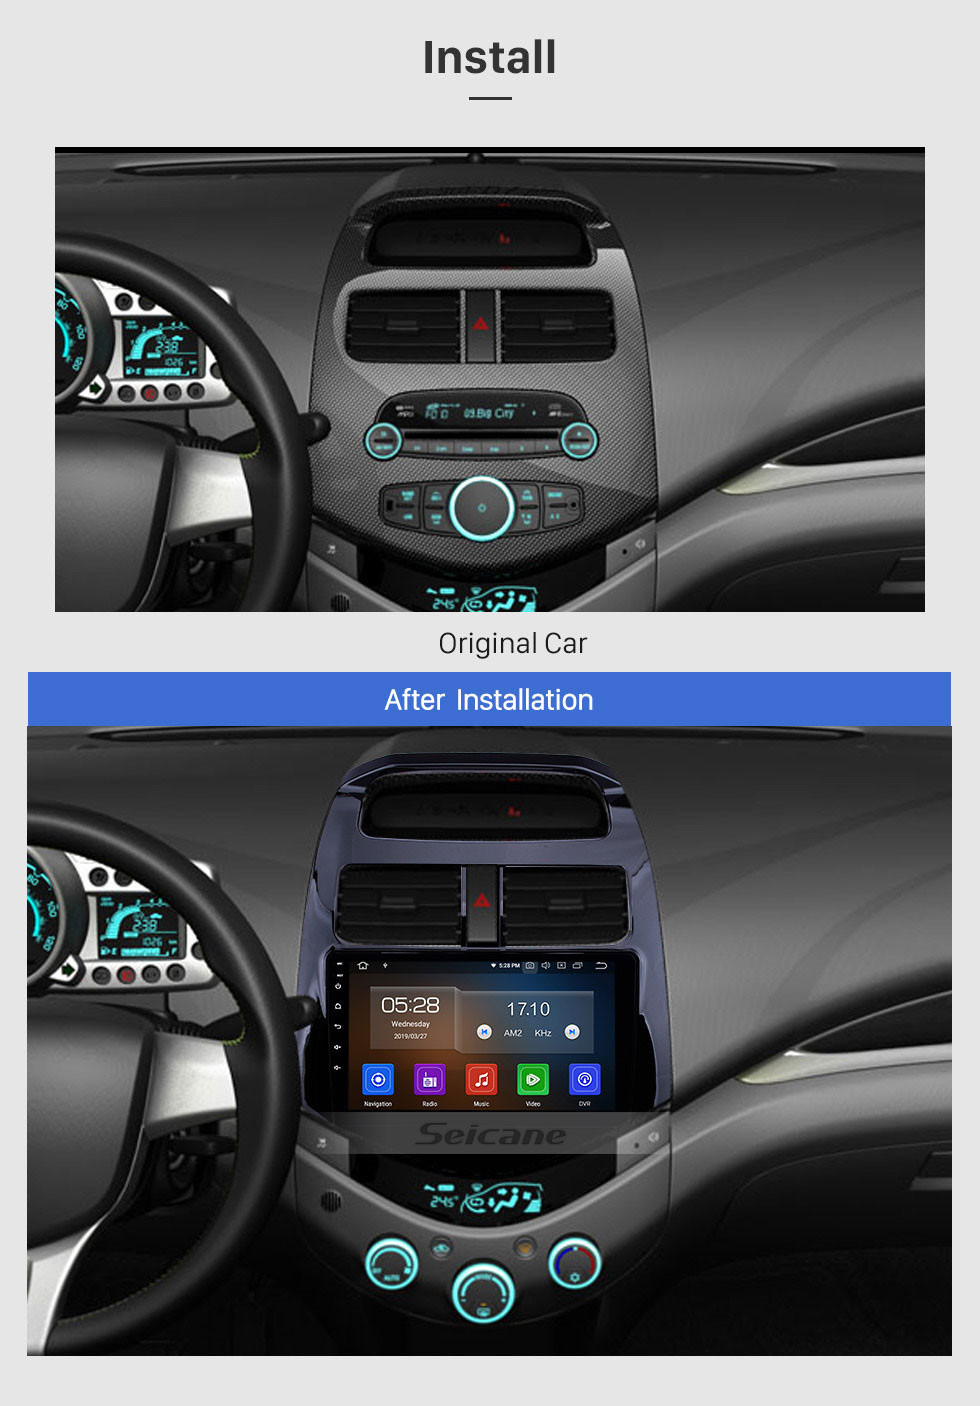 Seicane 9 inch Android 10.0 GPS Navigation for 2011 2012 2013 2014 Chevy Chevrolet DAEWOO Spark Beat Matiz HD Touchscreen Bluetooth Radio Wifi Music USB AUX ssupport DVR OBD2 Carplay Rearview Camera